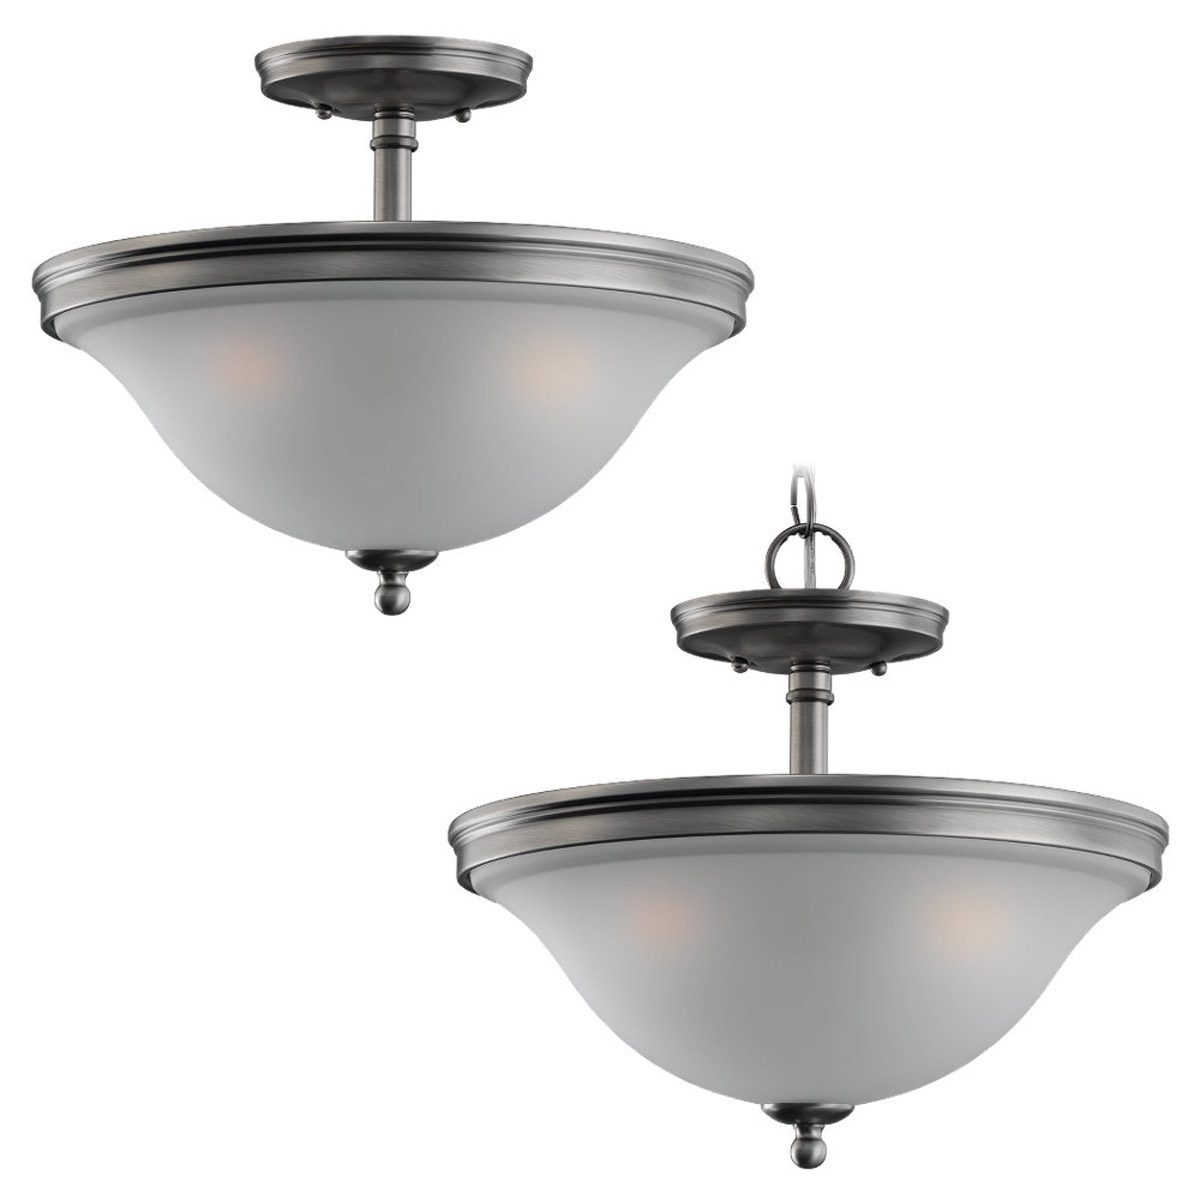 Sea Gull 77850-965 Gladstone 3 Light 14 inch Antique Brushed Nickel Flush Mount Ceiling Light in Satin Etched Glass photo